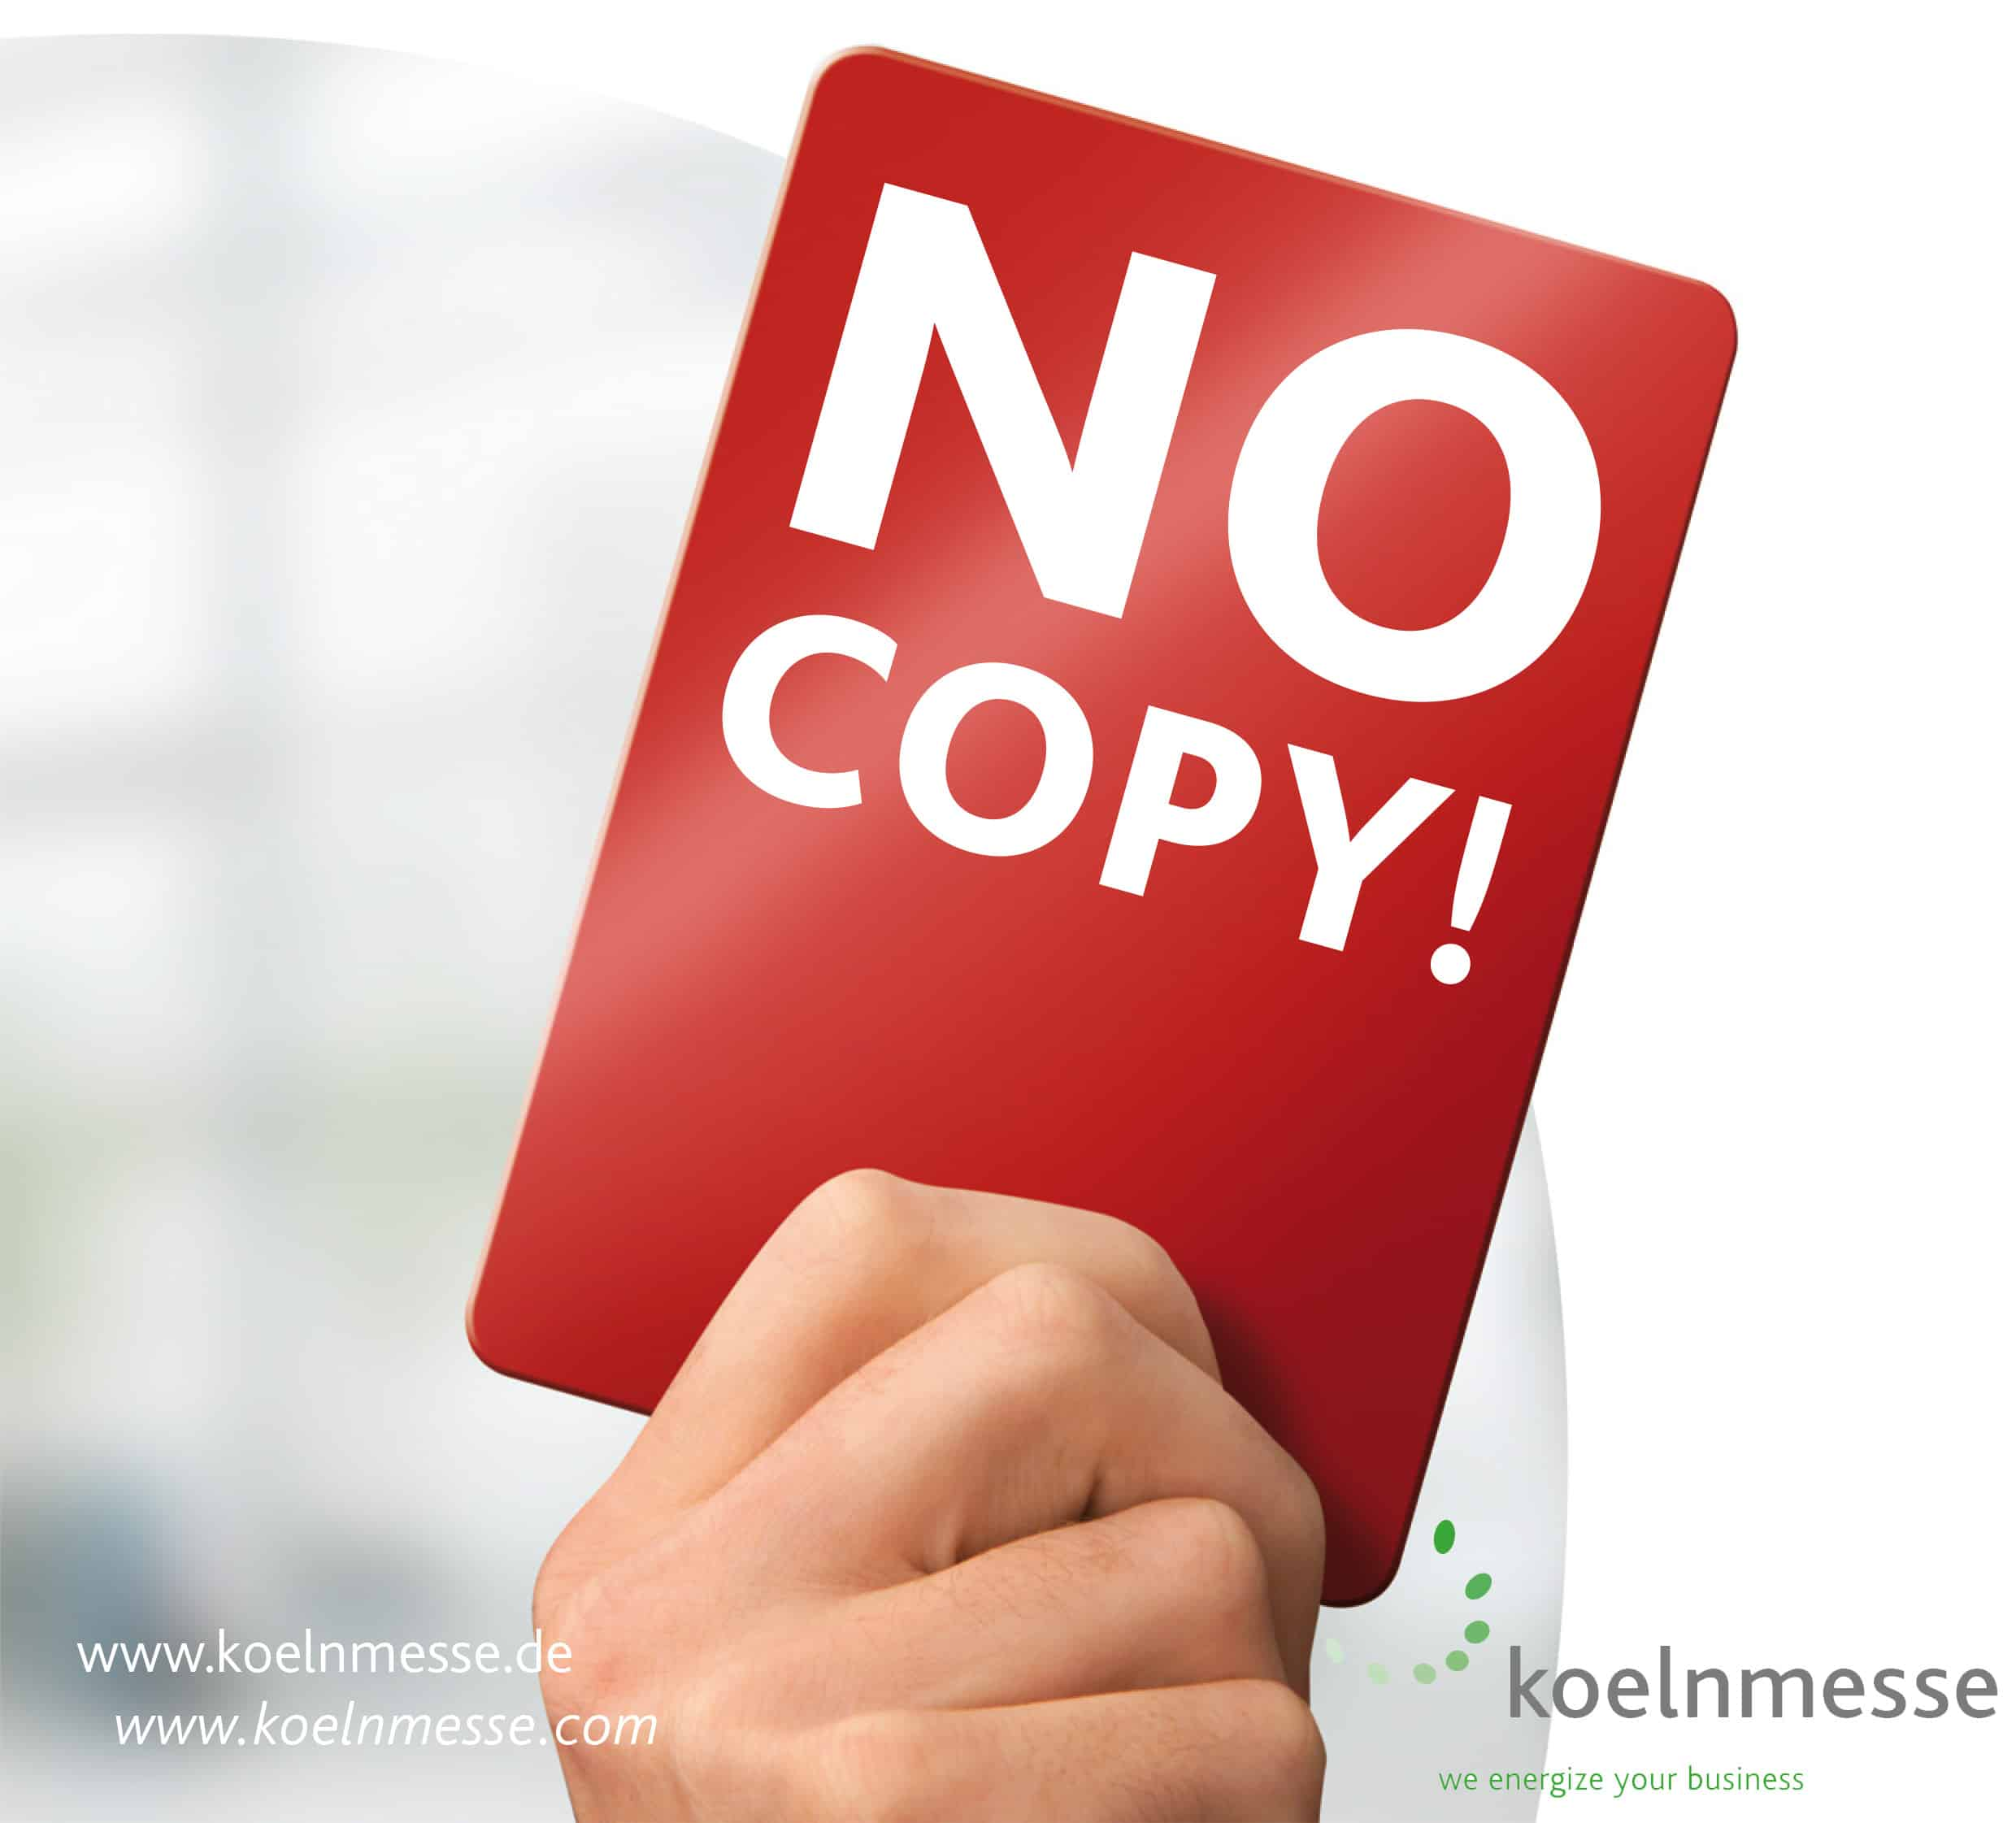 No Copy! – Originals only!